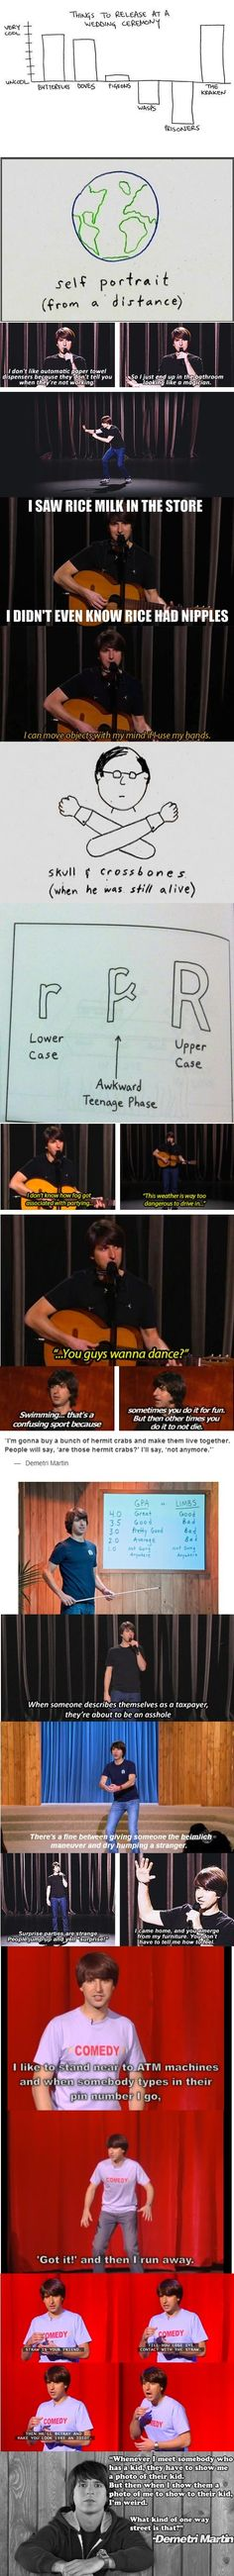 Demetri Martin... hadn't heard of him til now... dying.